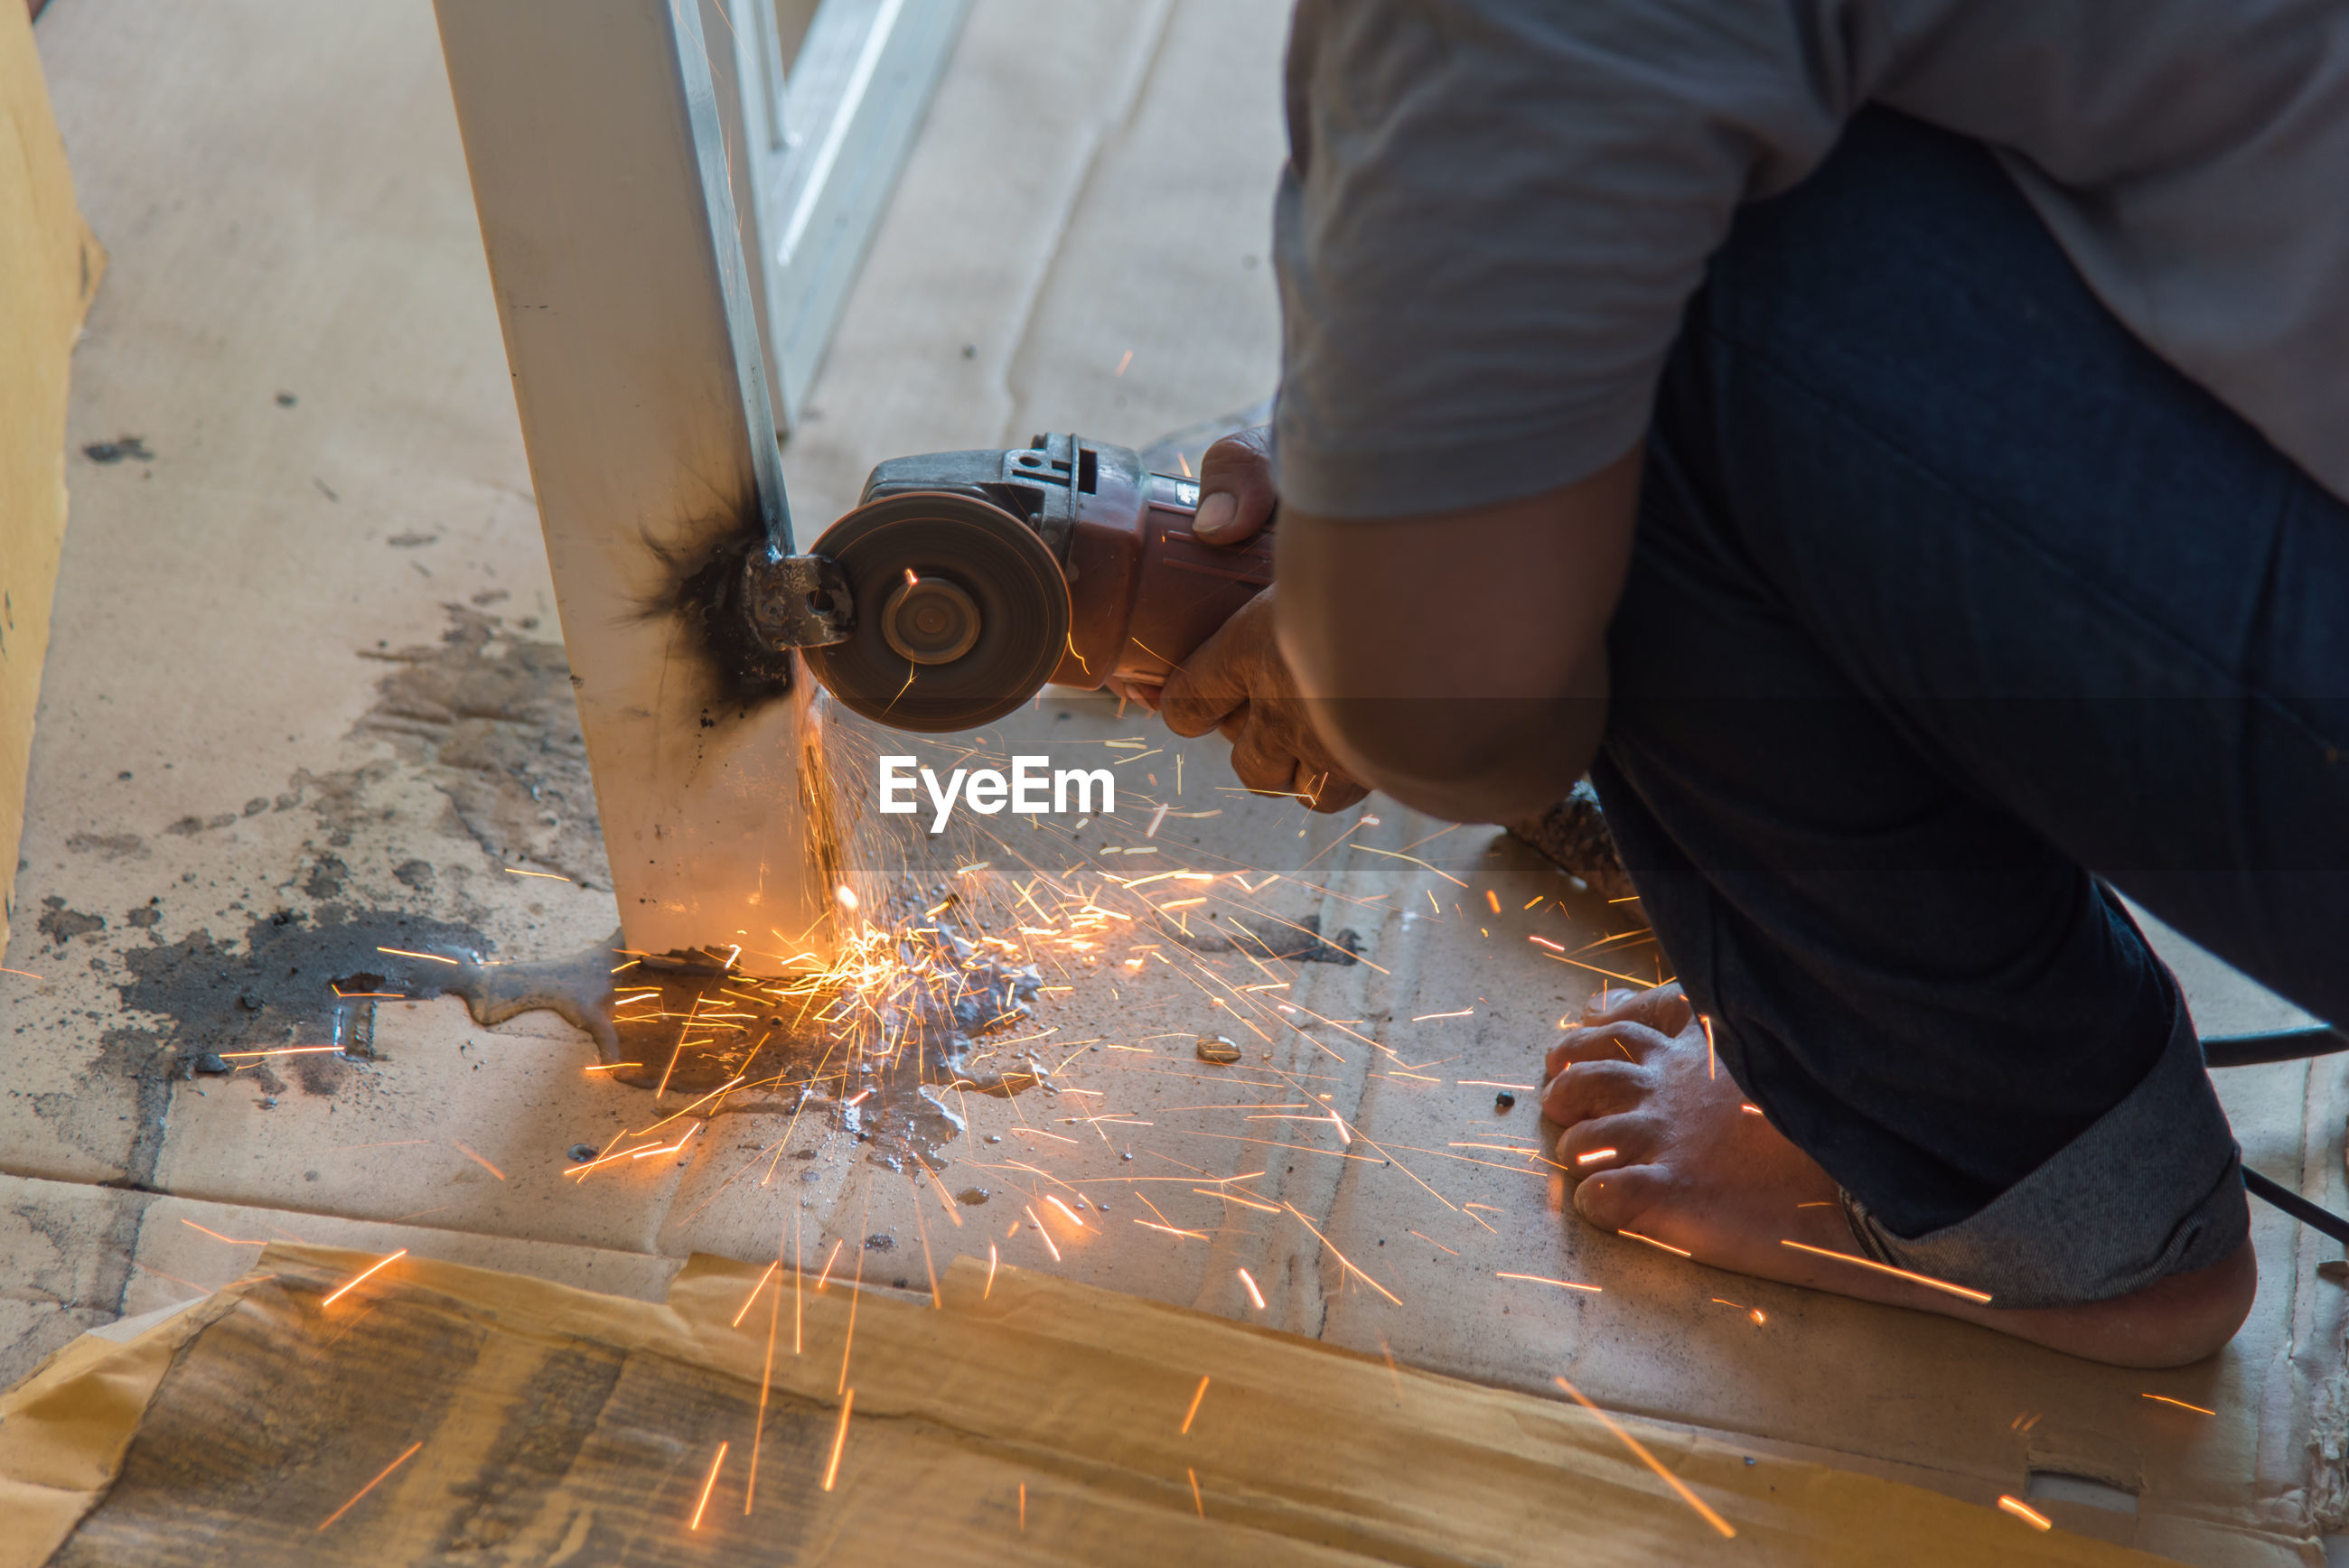 Close-up of person working on metal